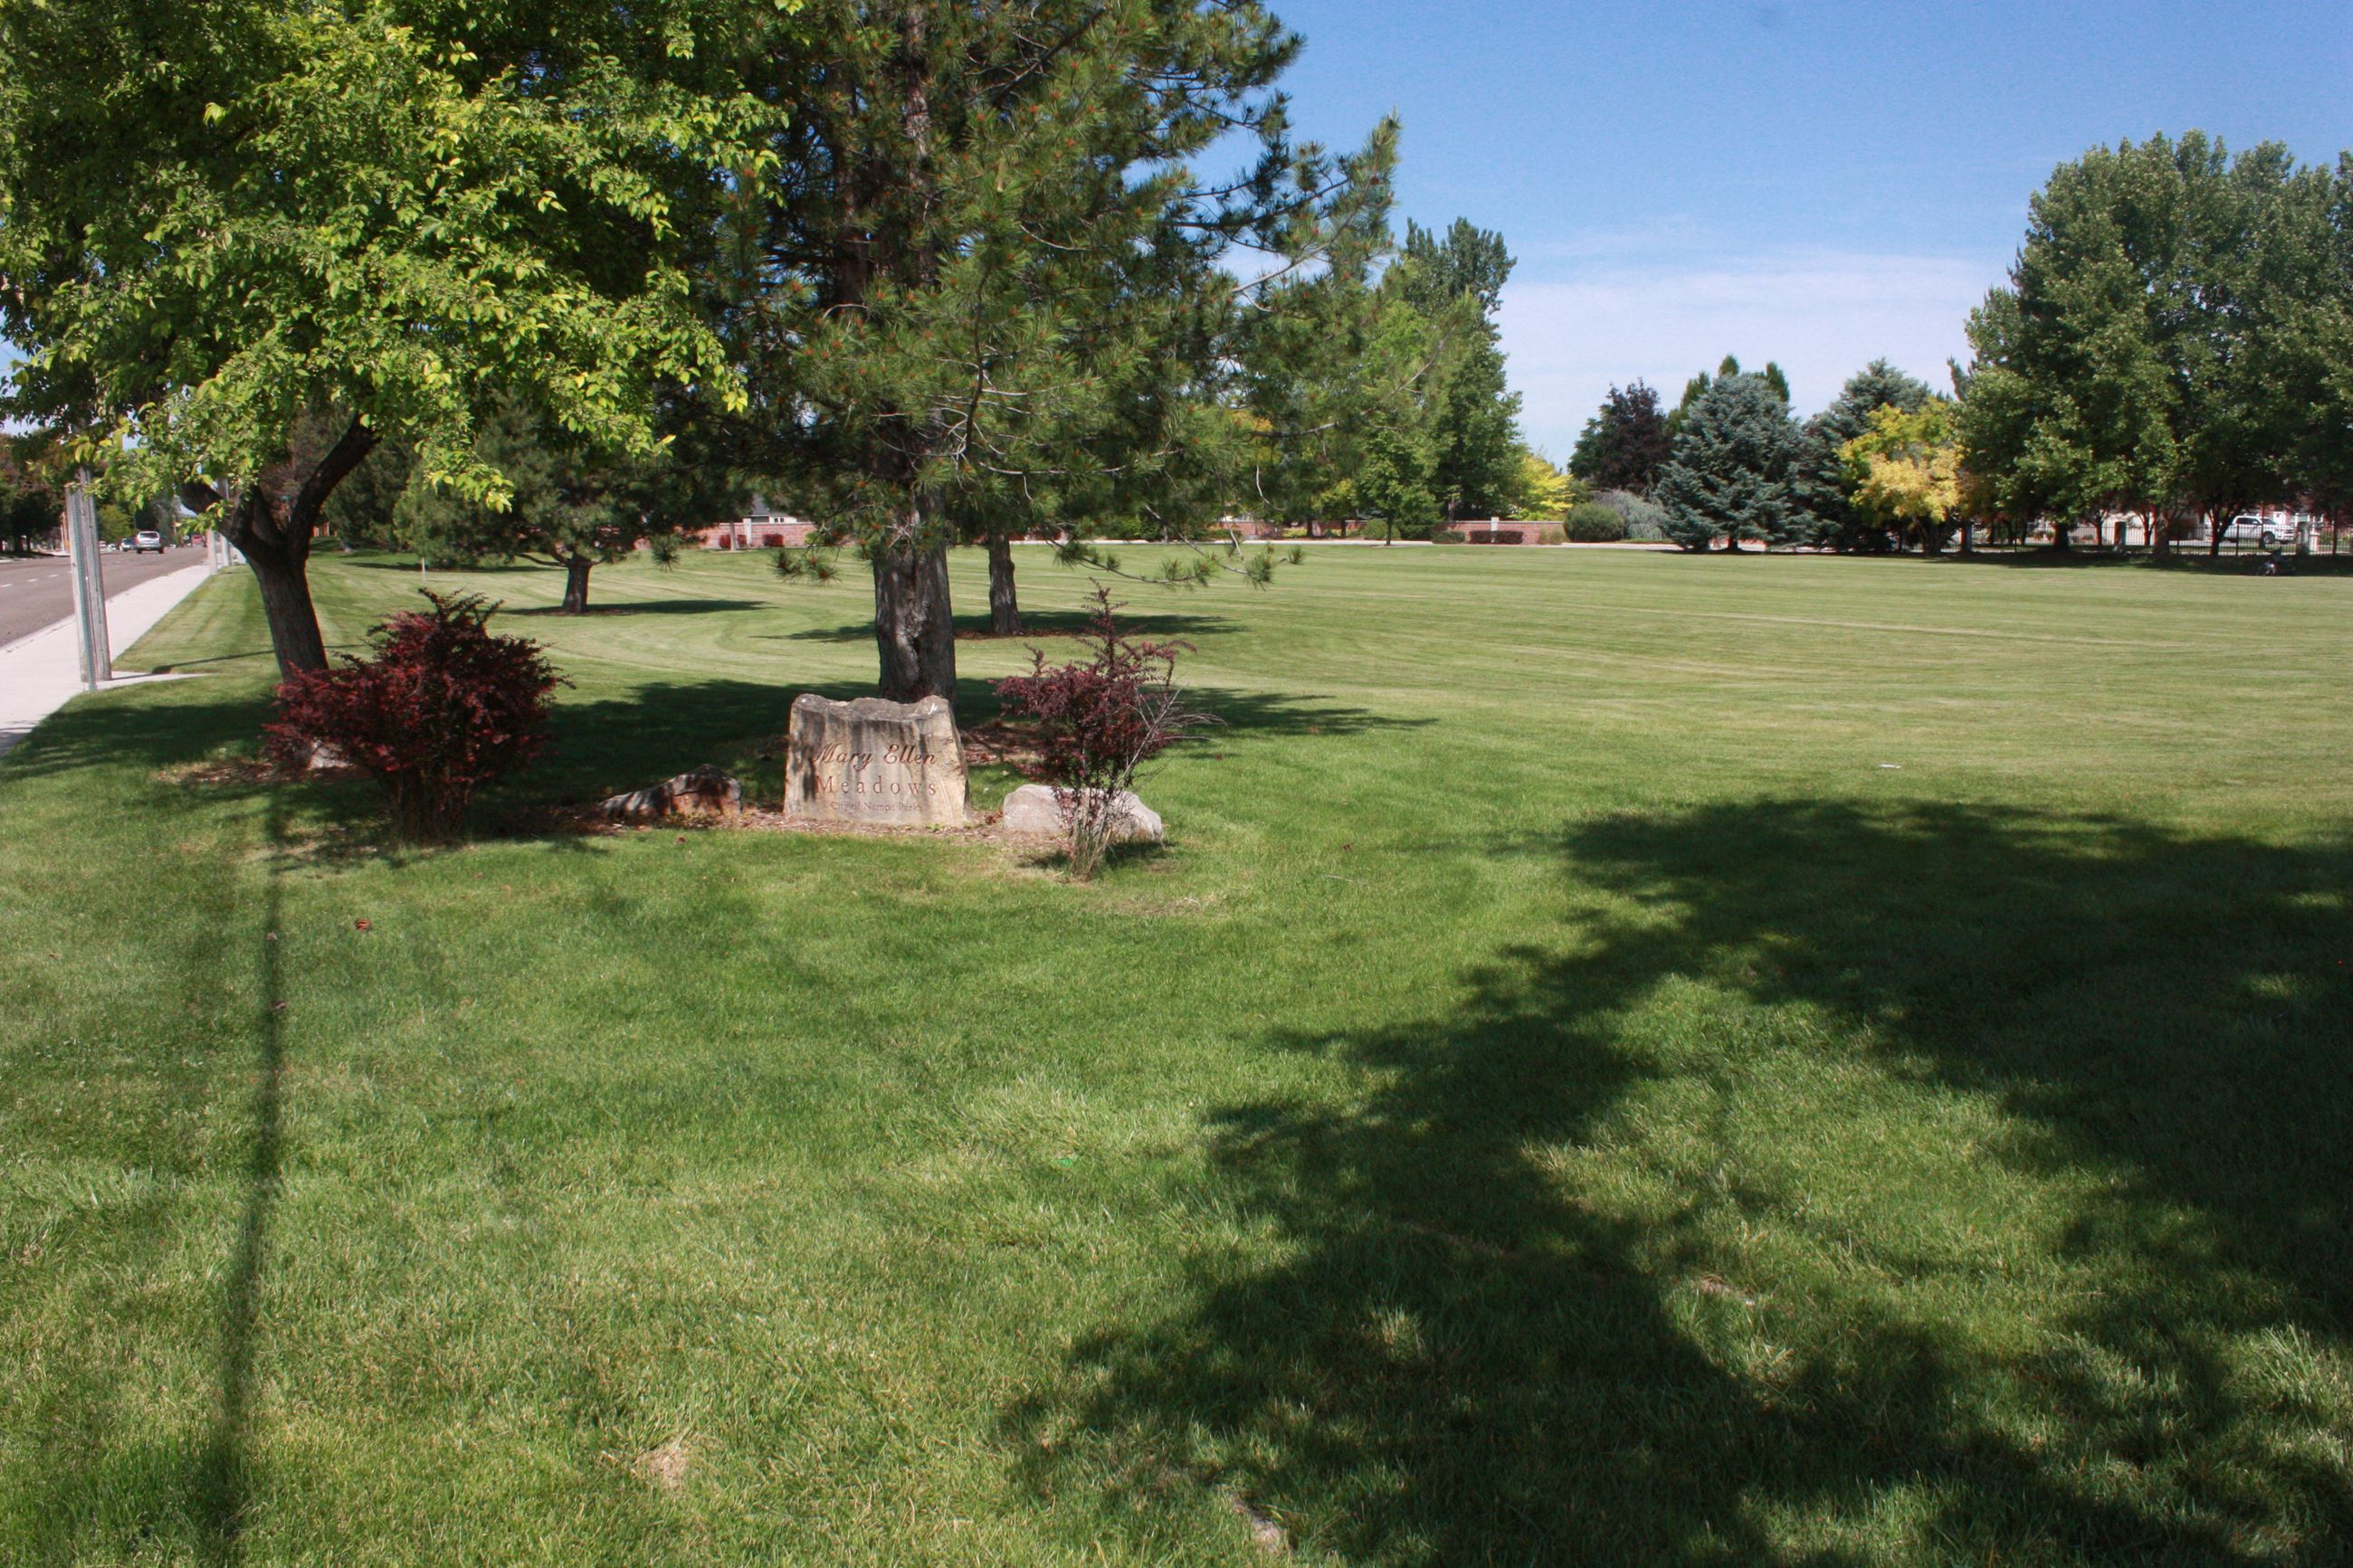 Grassy area with trees and bushes and engraved rock